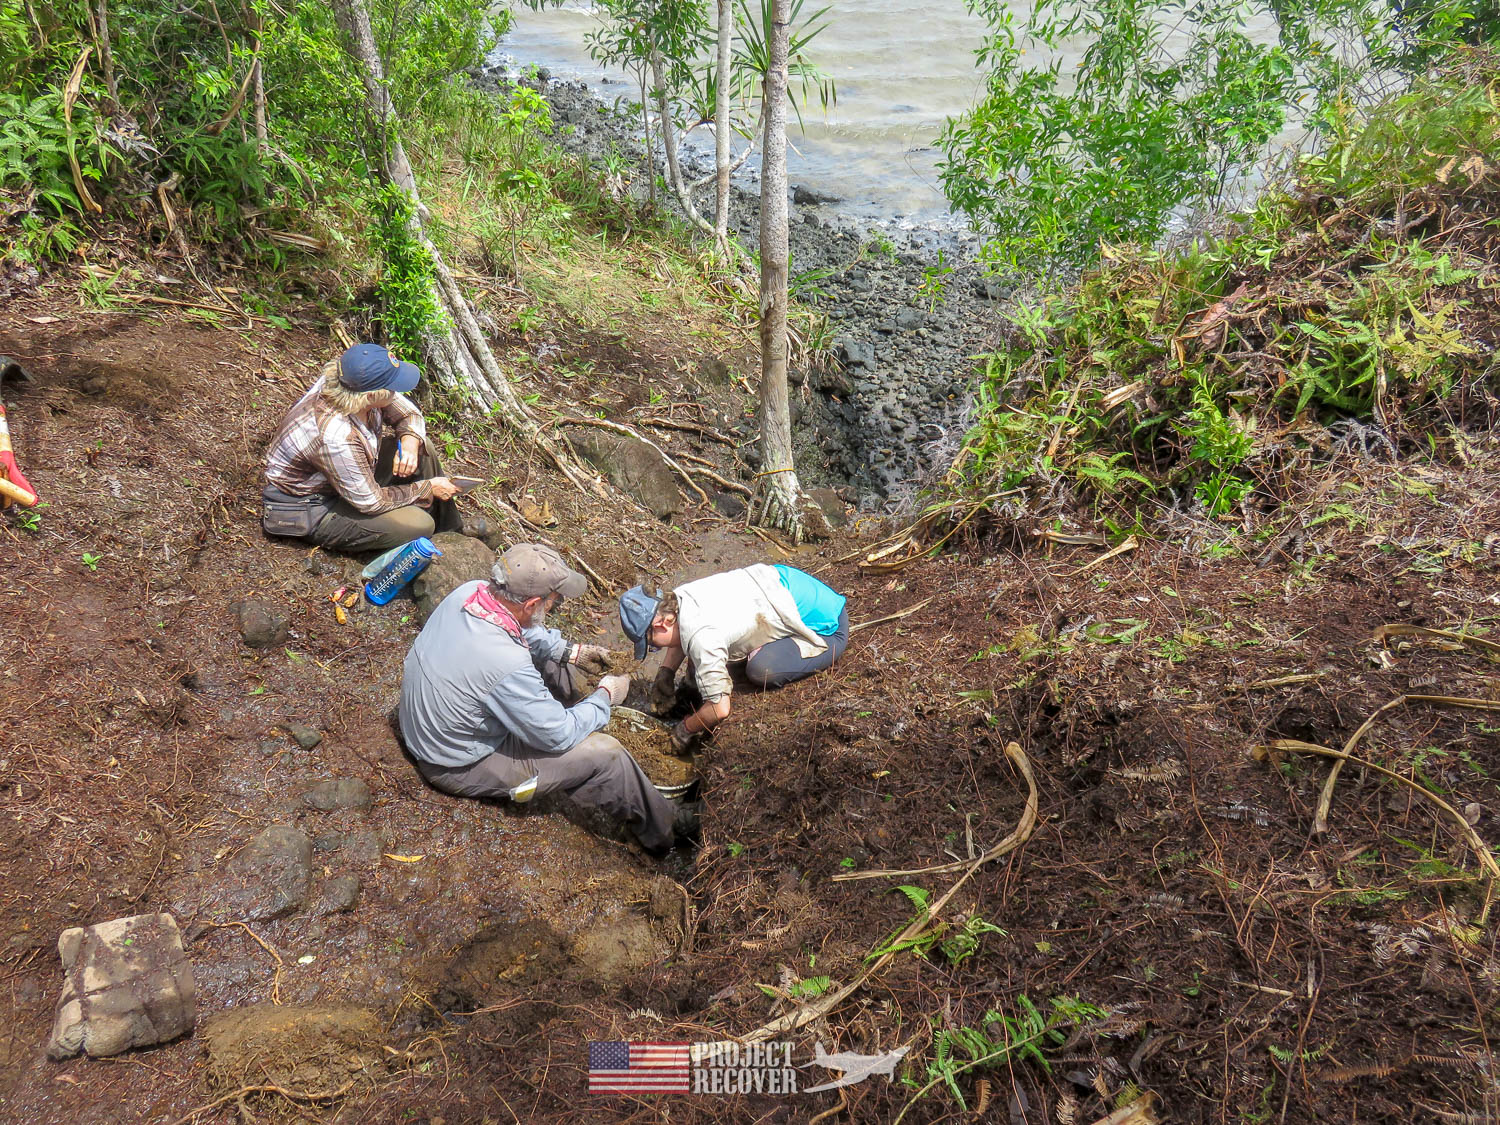 Excavating in Palau under supervision of archaeologist, Jolie Liston. Execution of WWII POWs and Innocents in Palau - Project Recover is committed to bringing the MIA home. Photos by Harry Parker Photography.com